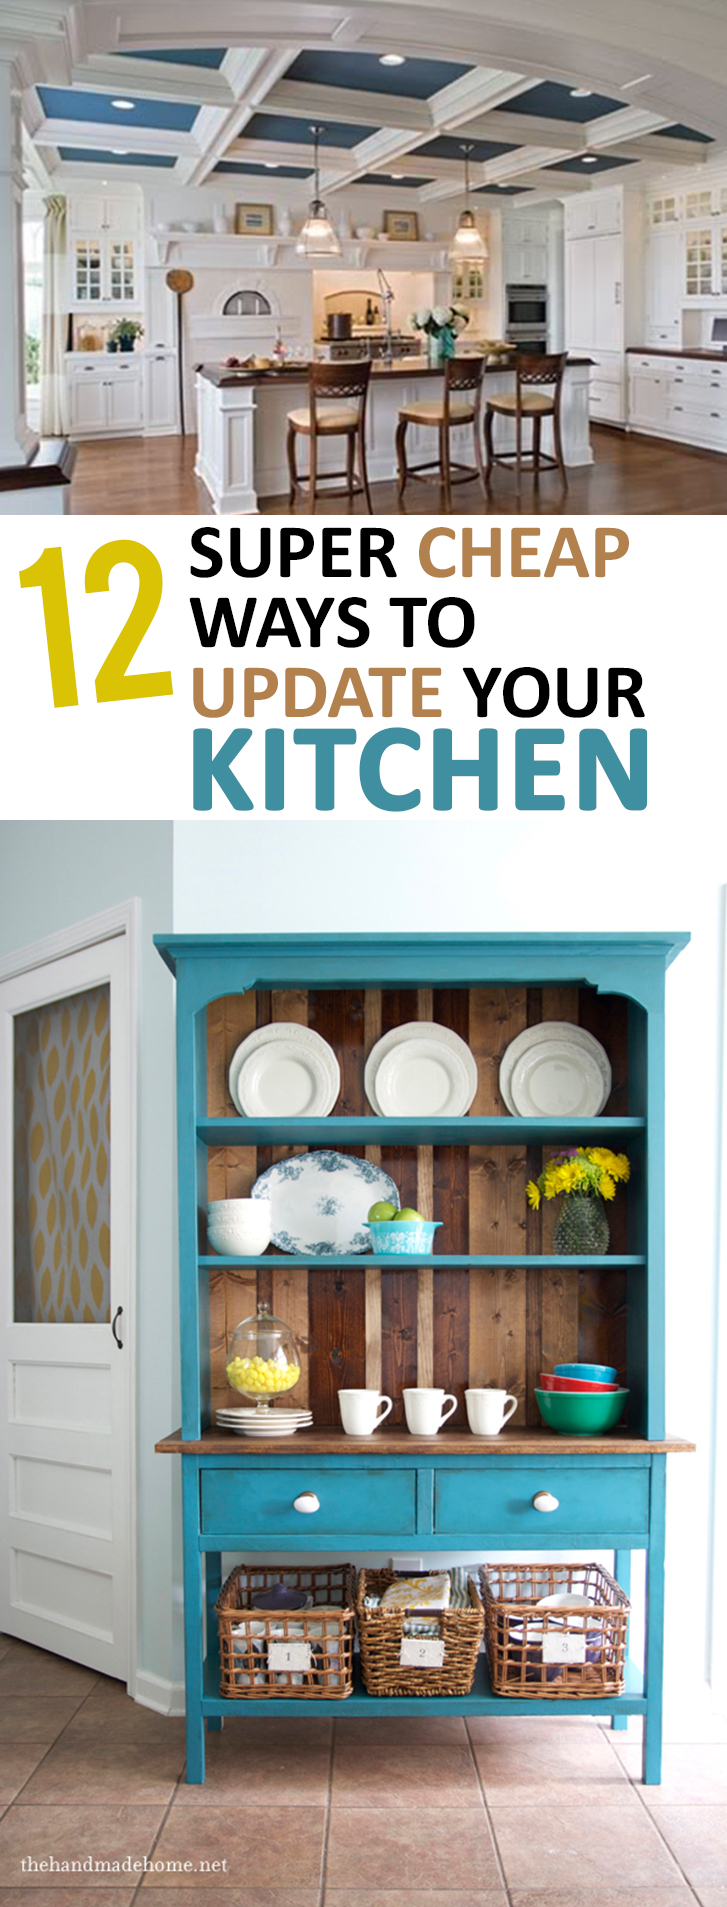 12 super cheap ways to update your kitchen for Budget kitchen cabinet ideas